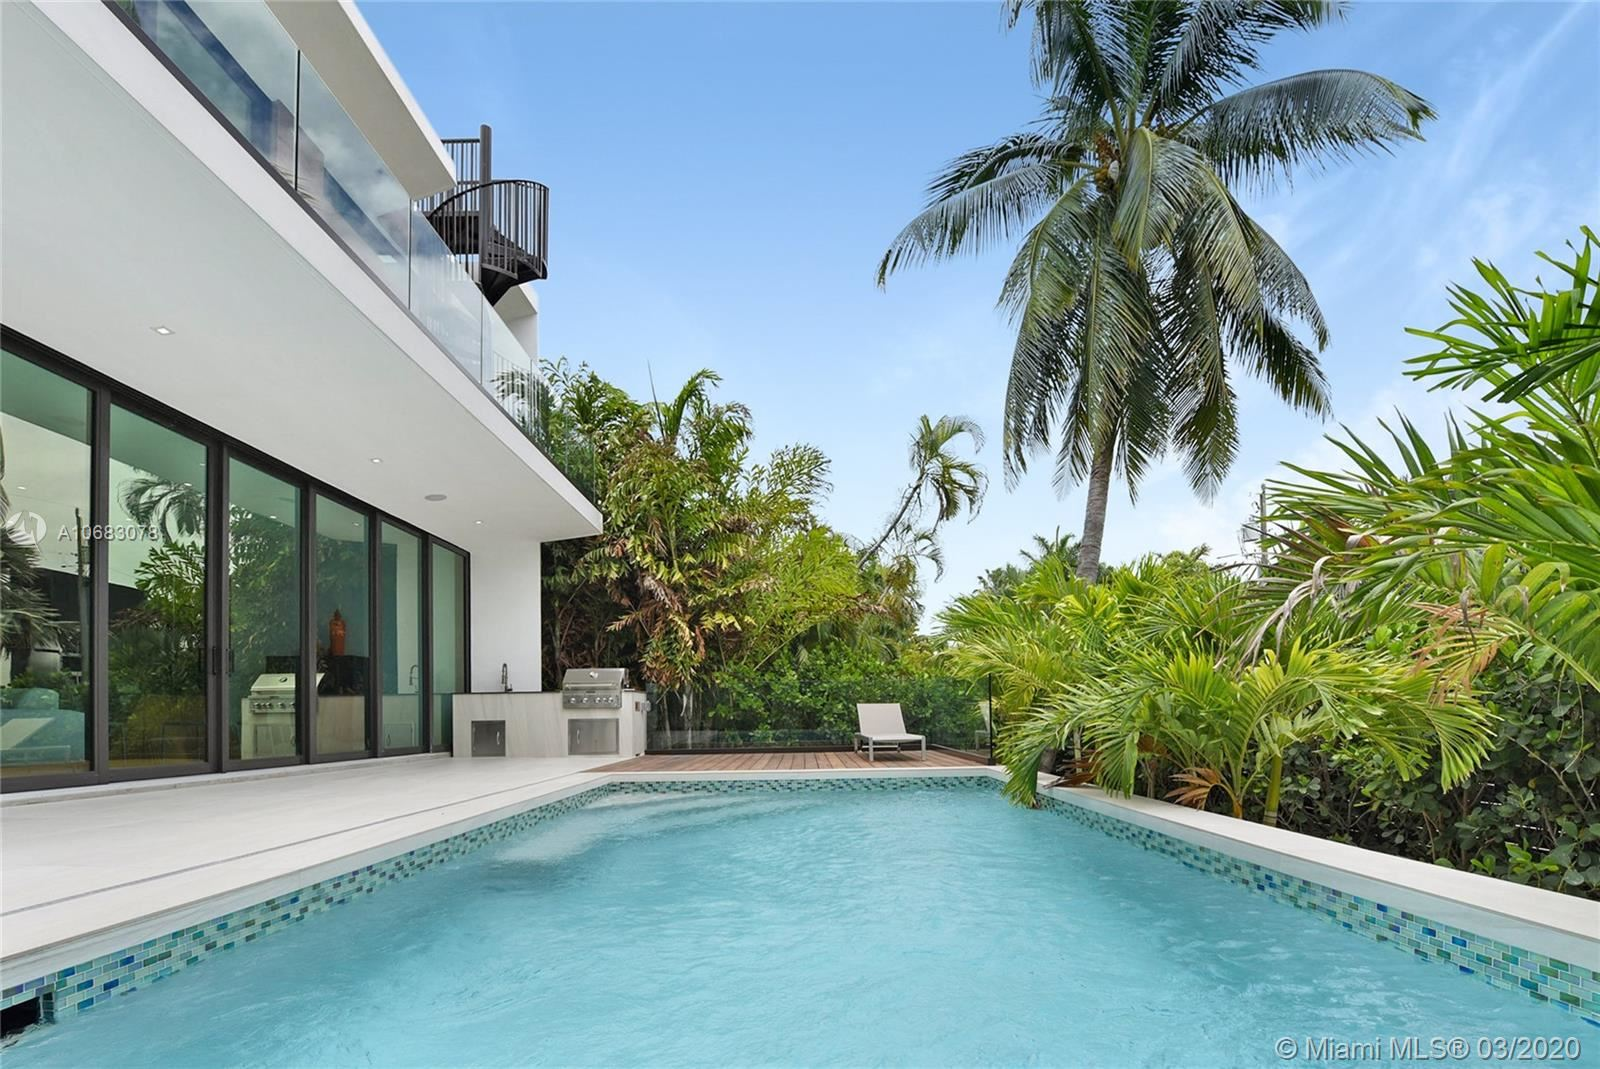 Photo 14 of Listing MLS a10683078 in 272 Palm Ave Miami Beach FL 33139